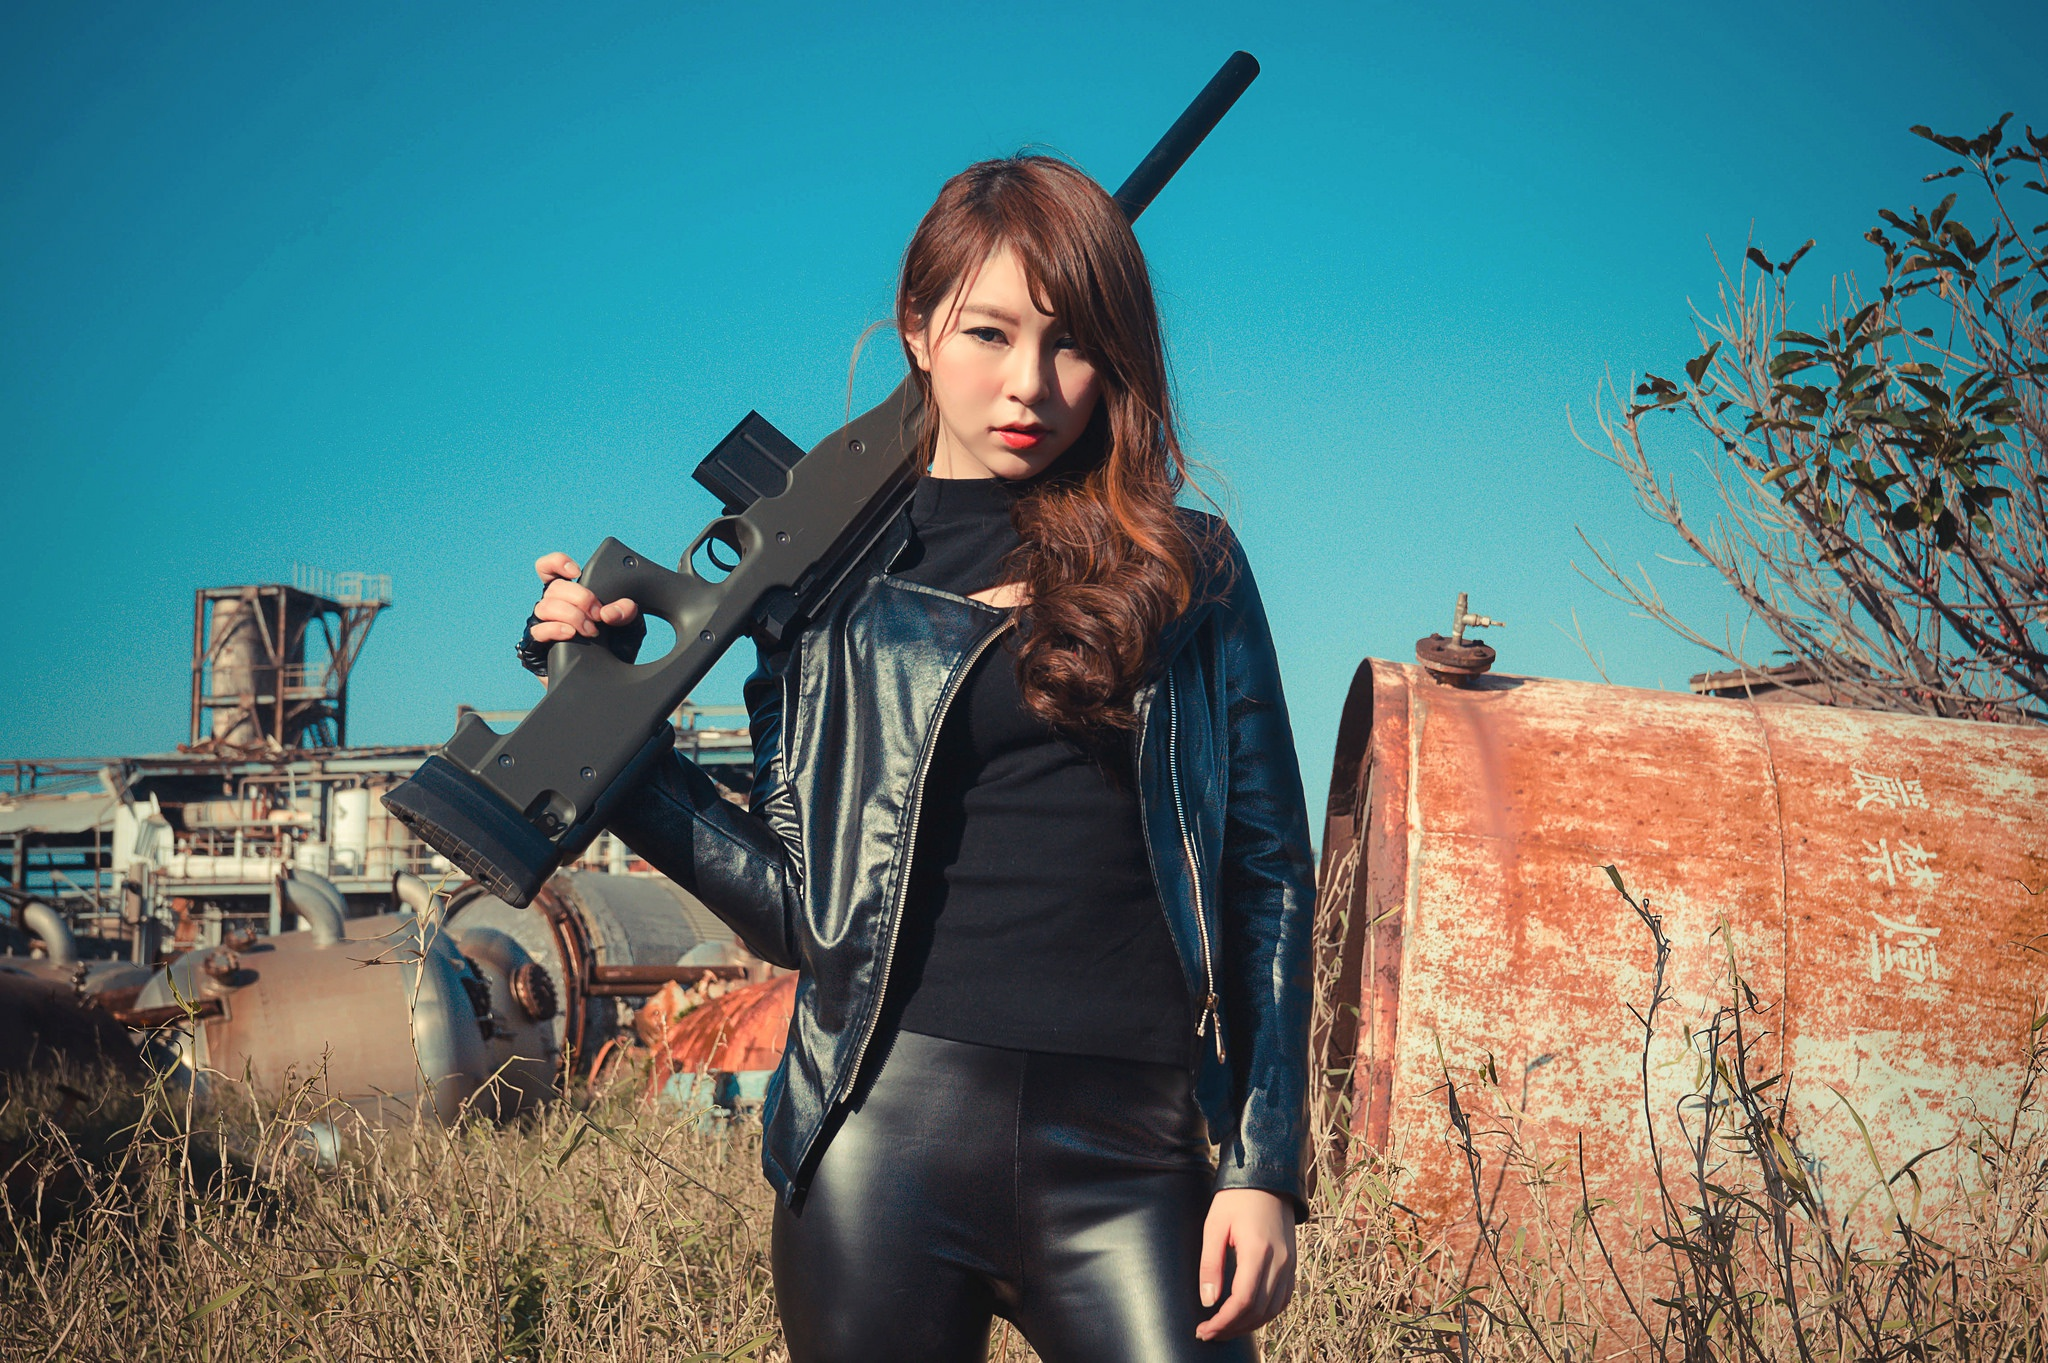 print-asian-girl-gun